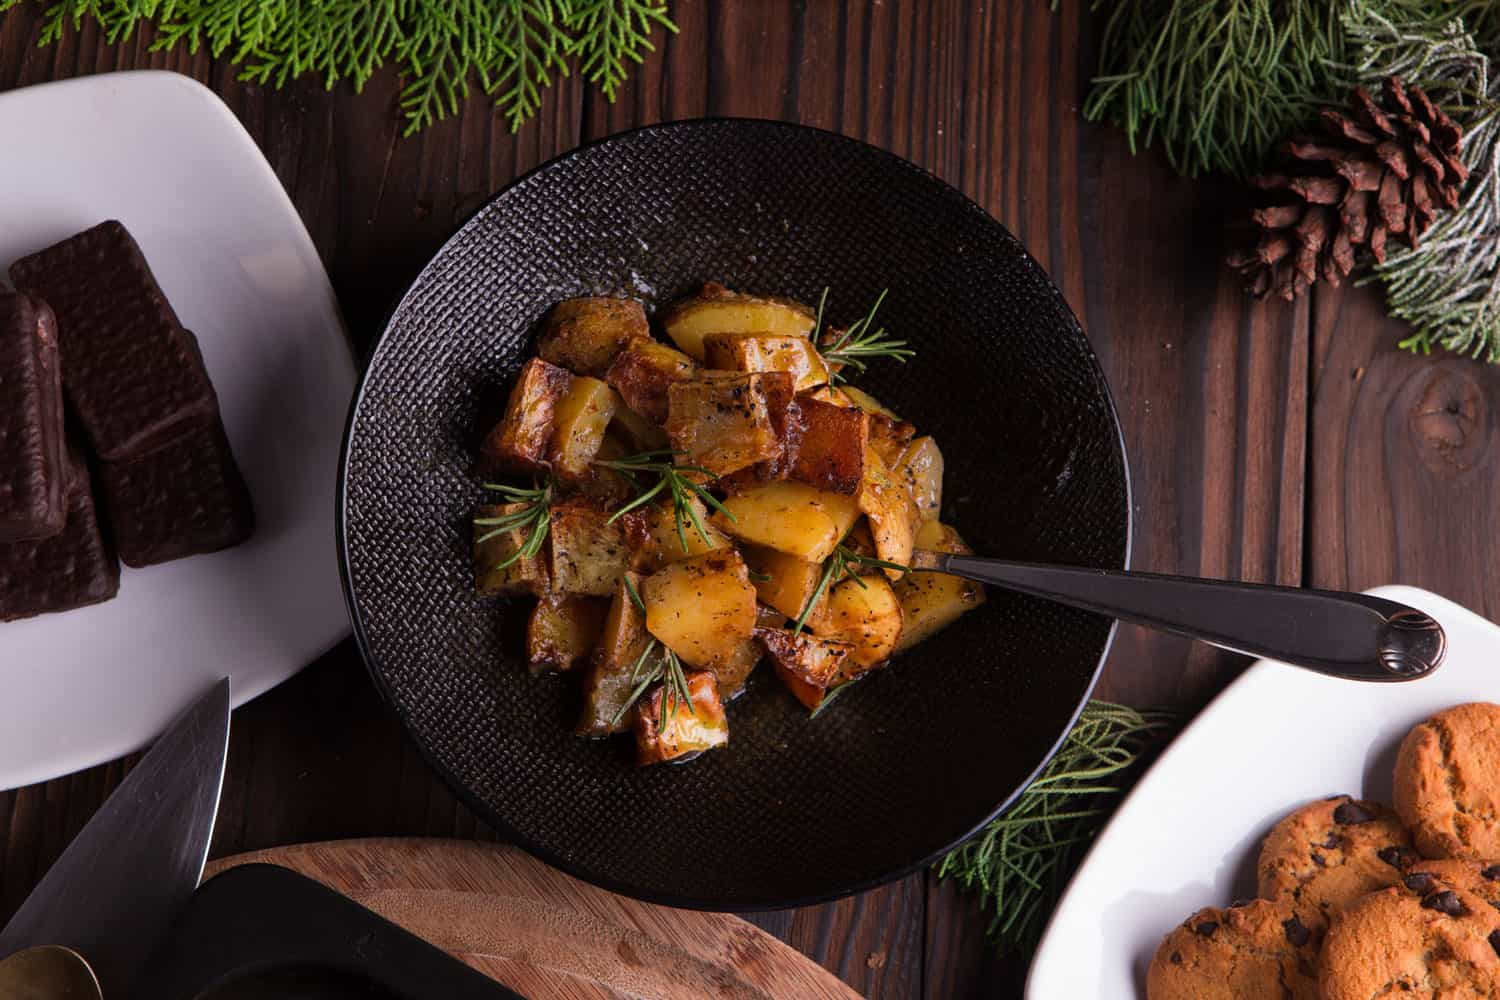 Sauteed sweet potato salad on black bowl on brown wooden background, How To Properly Sauté Potatoes - With 3 Yummy Recipes!